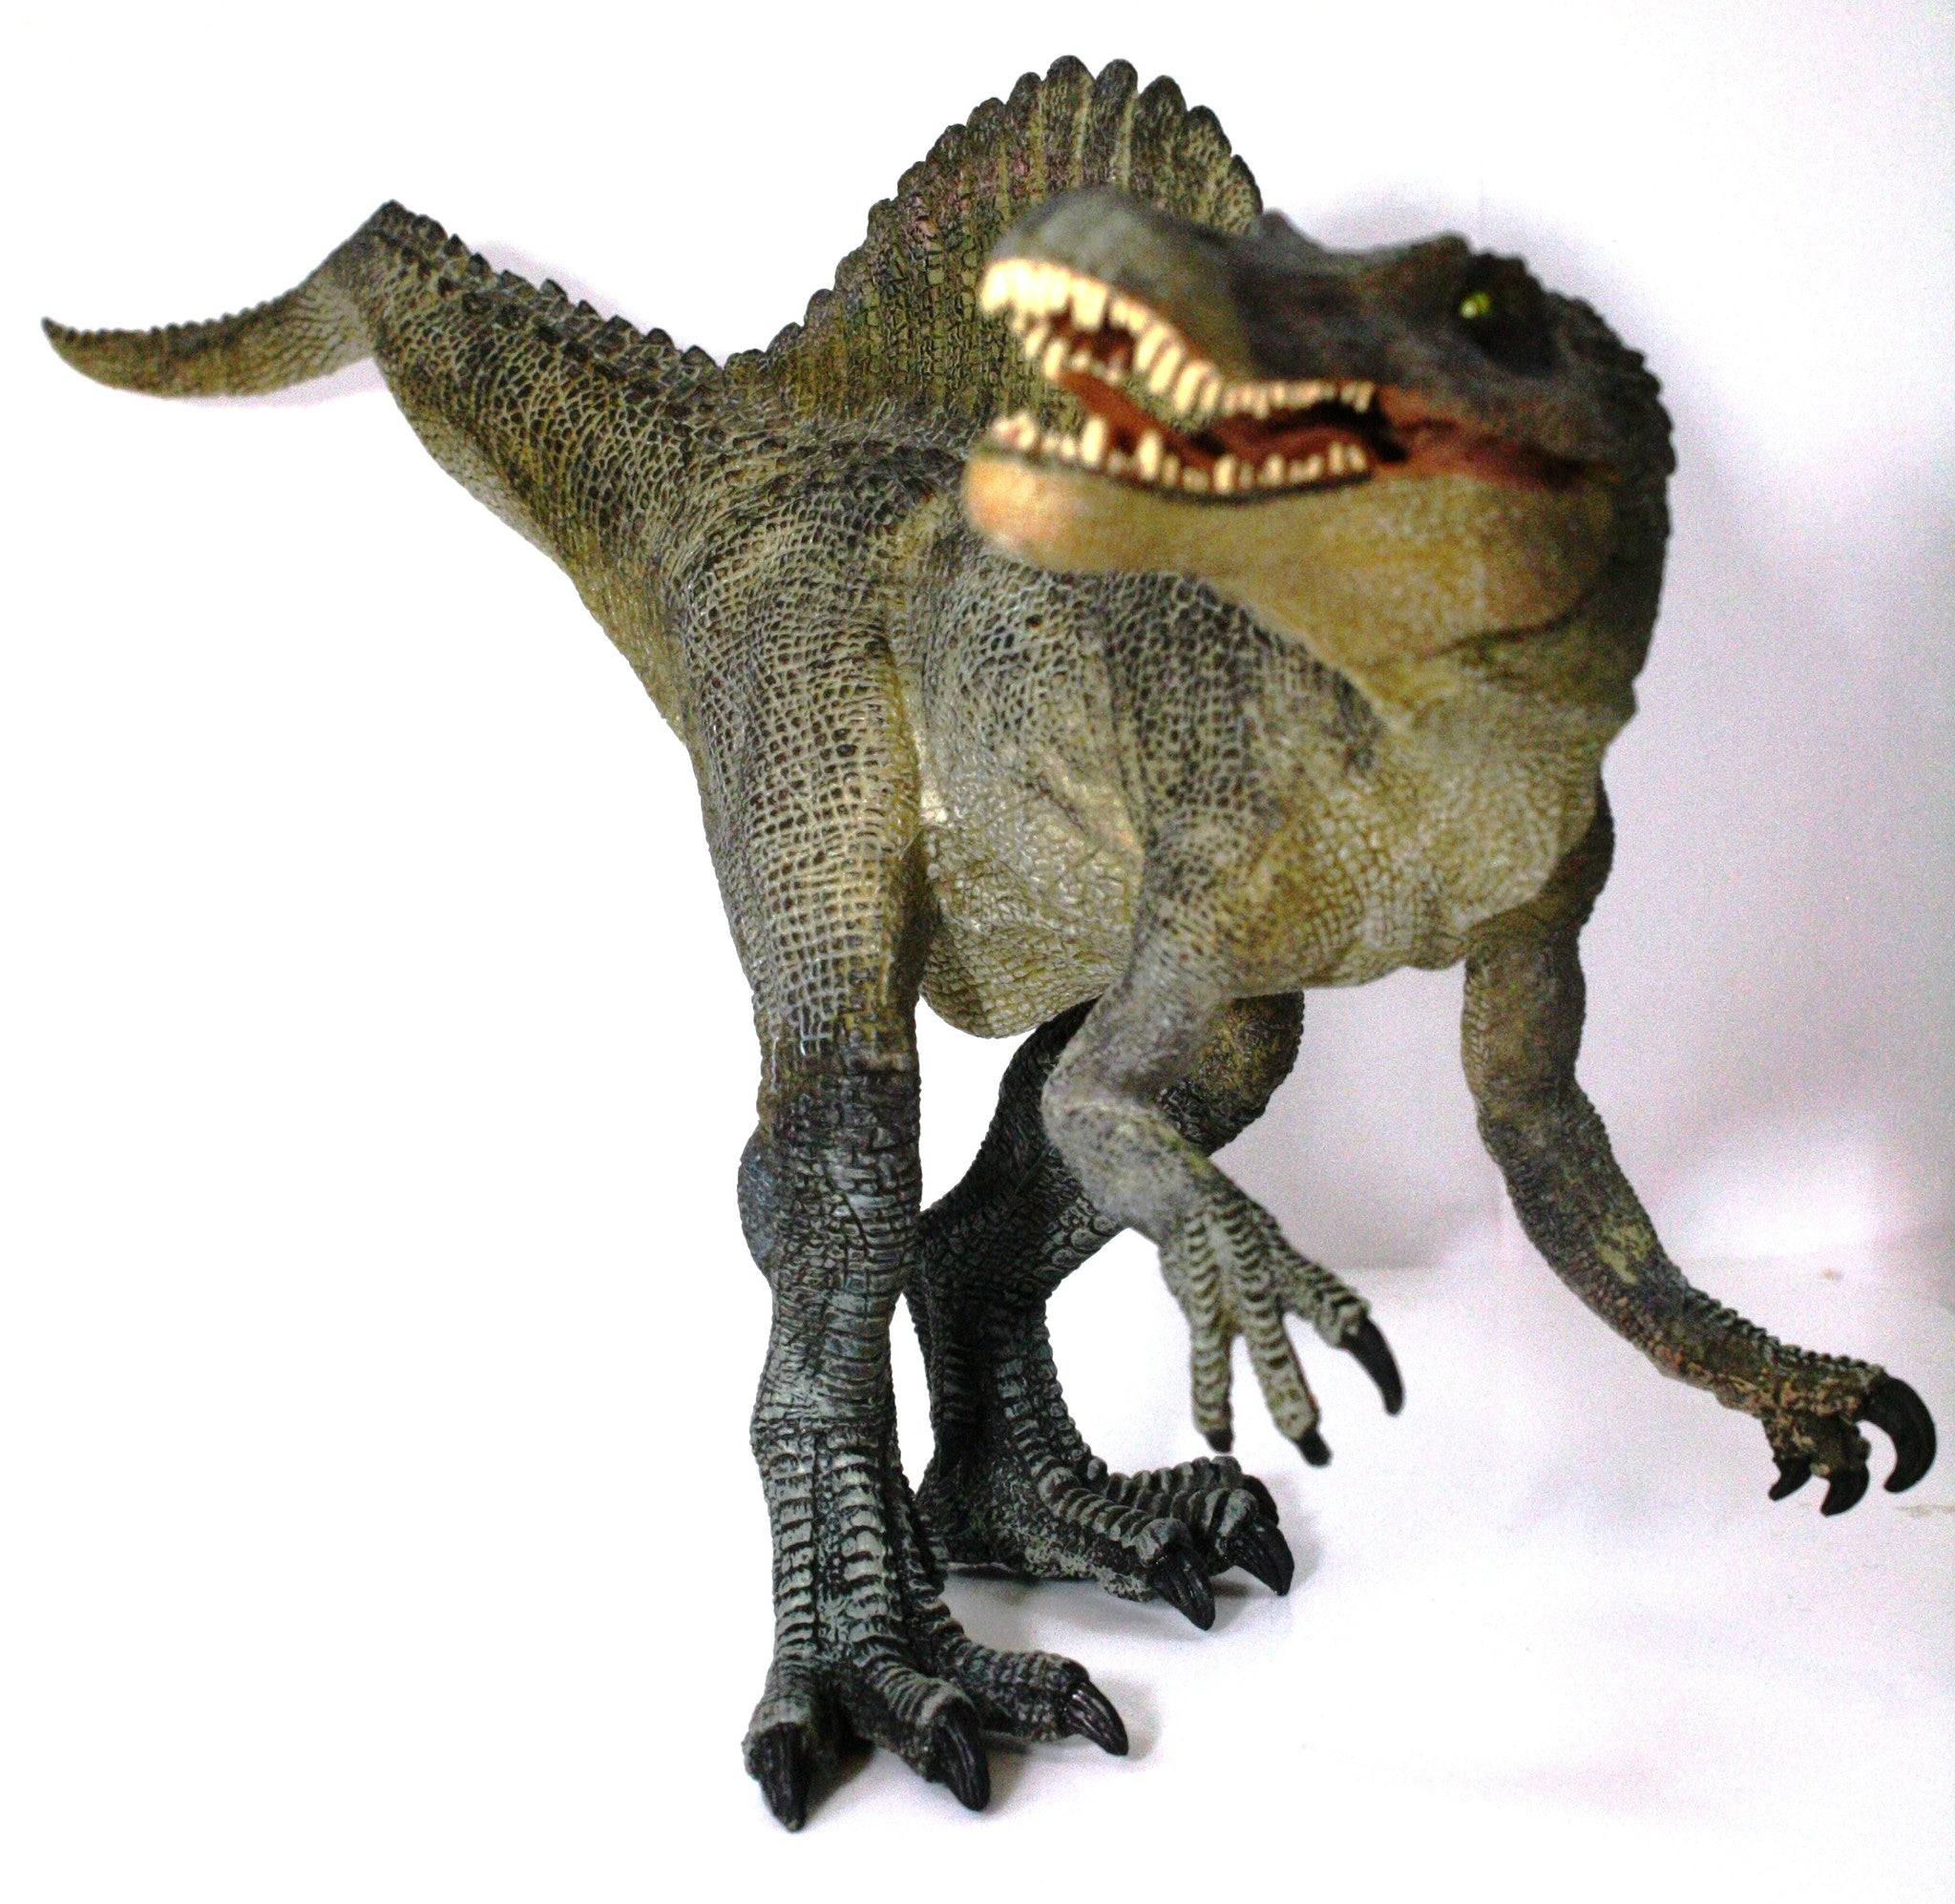 "6.5"" Tall Spinosaurus - Realistic Dinosaur Replica, by Papo - Off The Wall Toys and Gifts"